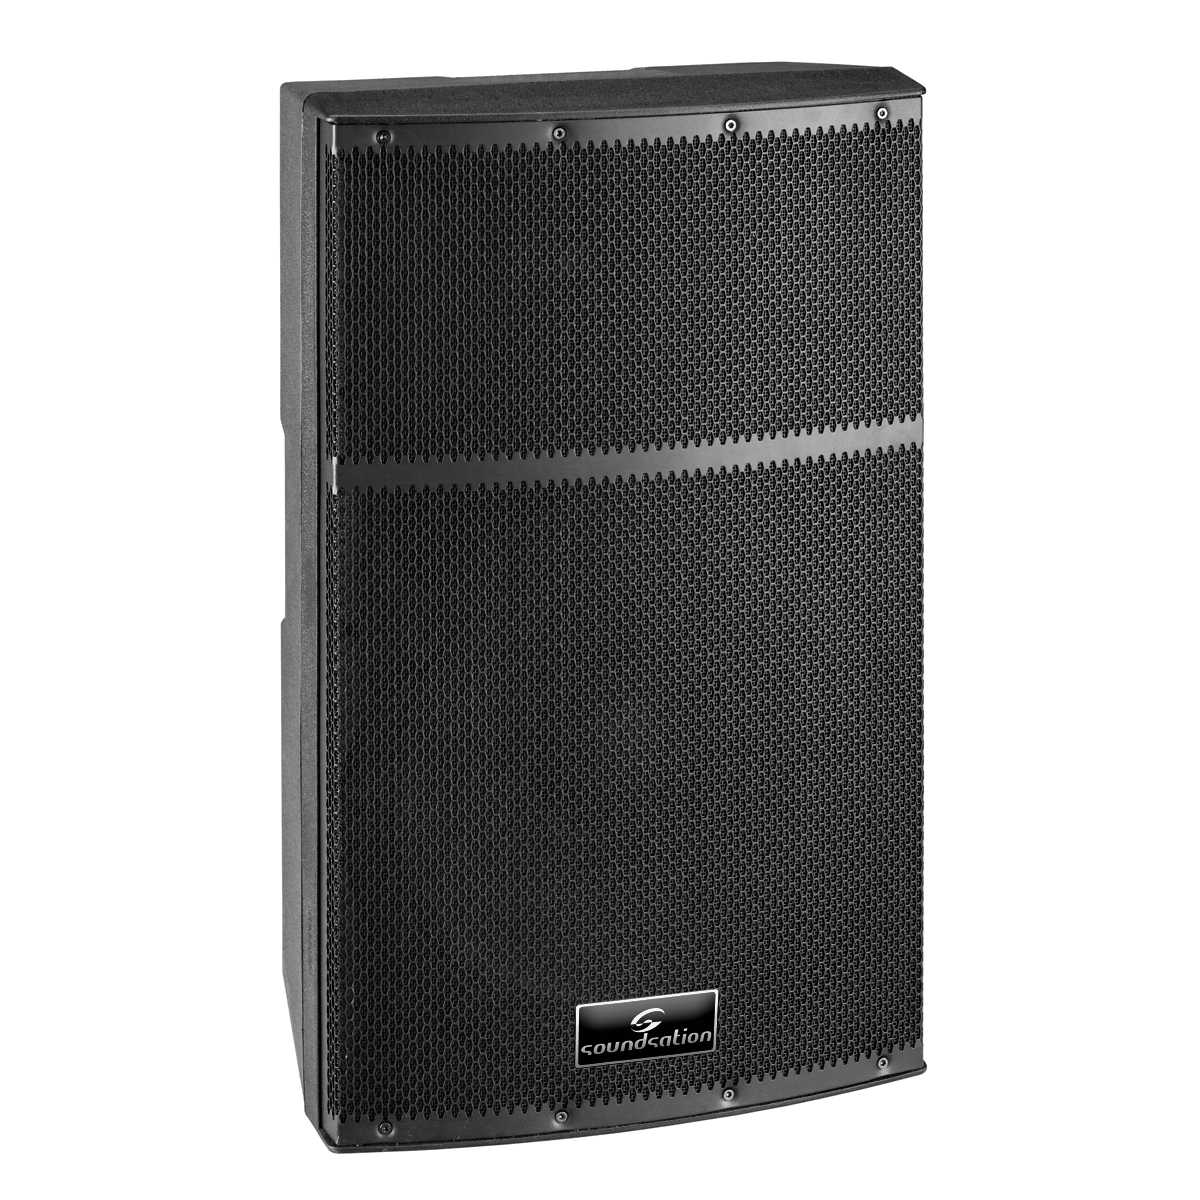 SOUNDSATION HYPER TOP 15A - 1000 Watt